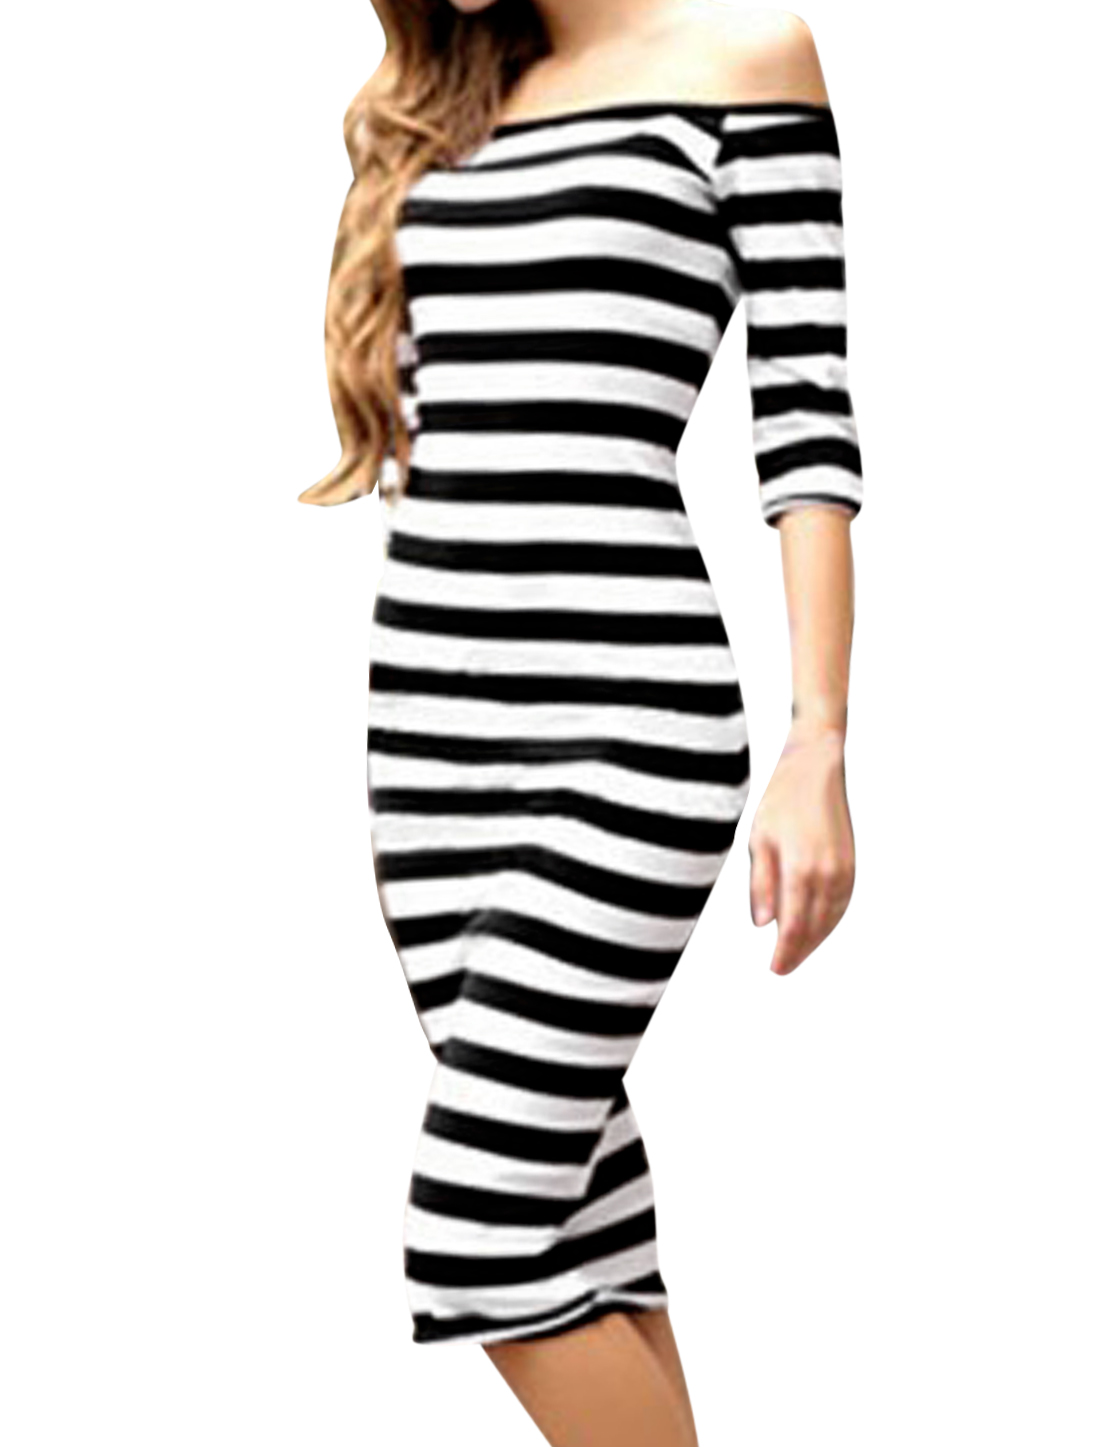 Lady Stripes Off the Shoulder Bodycon Sheath Dress Black White XS